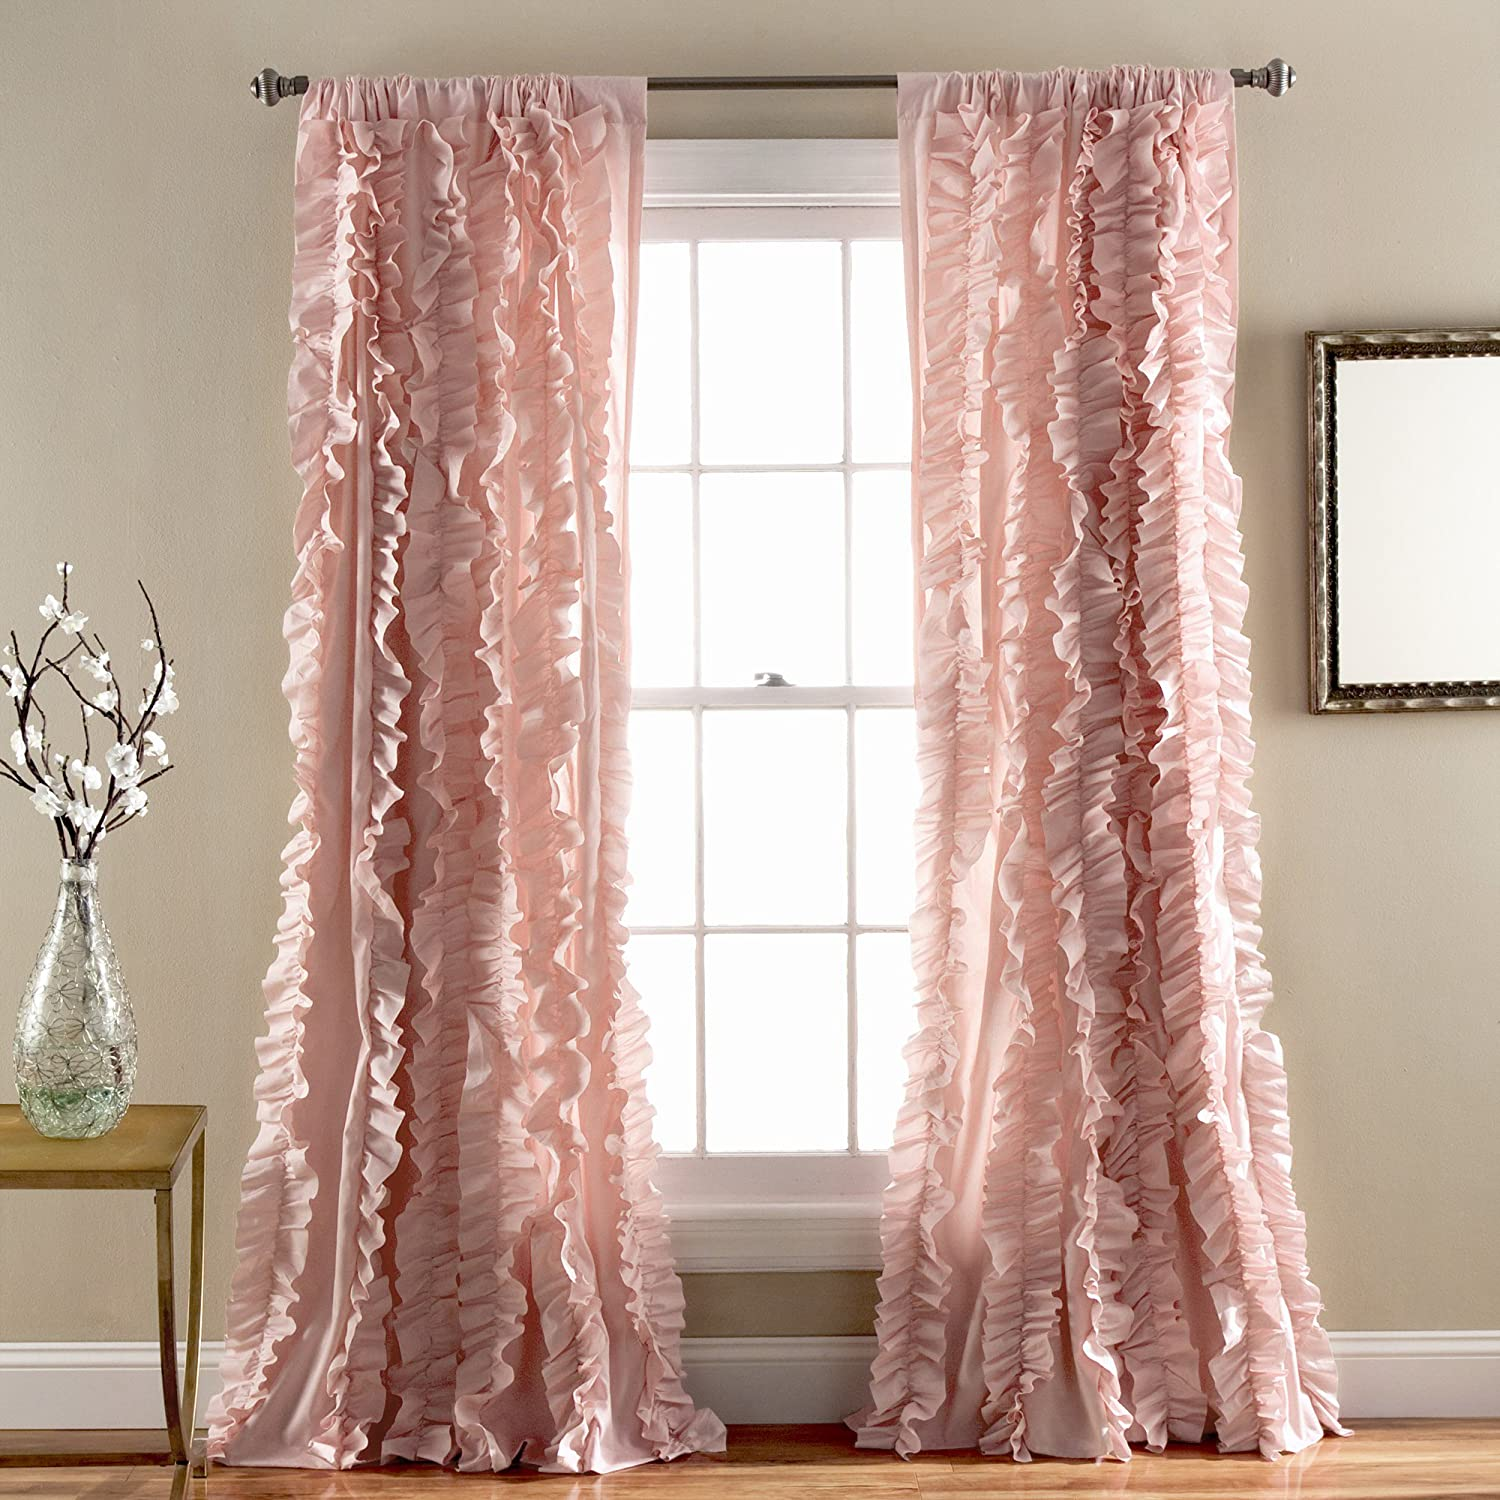 Amazon Lush Decor Belle Window Curtain Panel 84 x 54 Pink